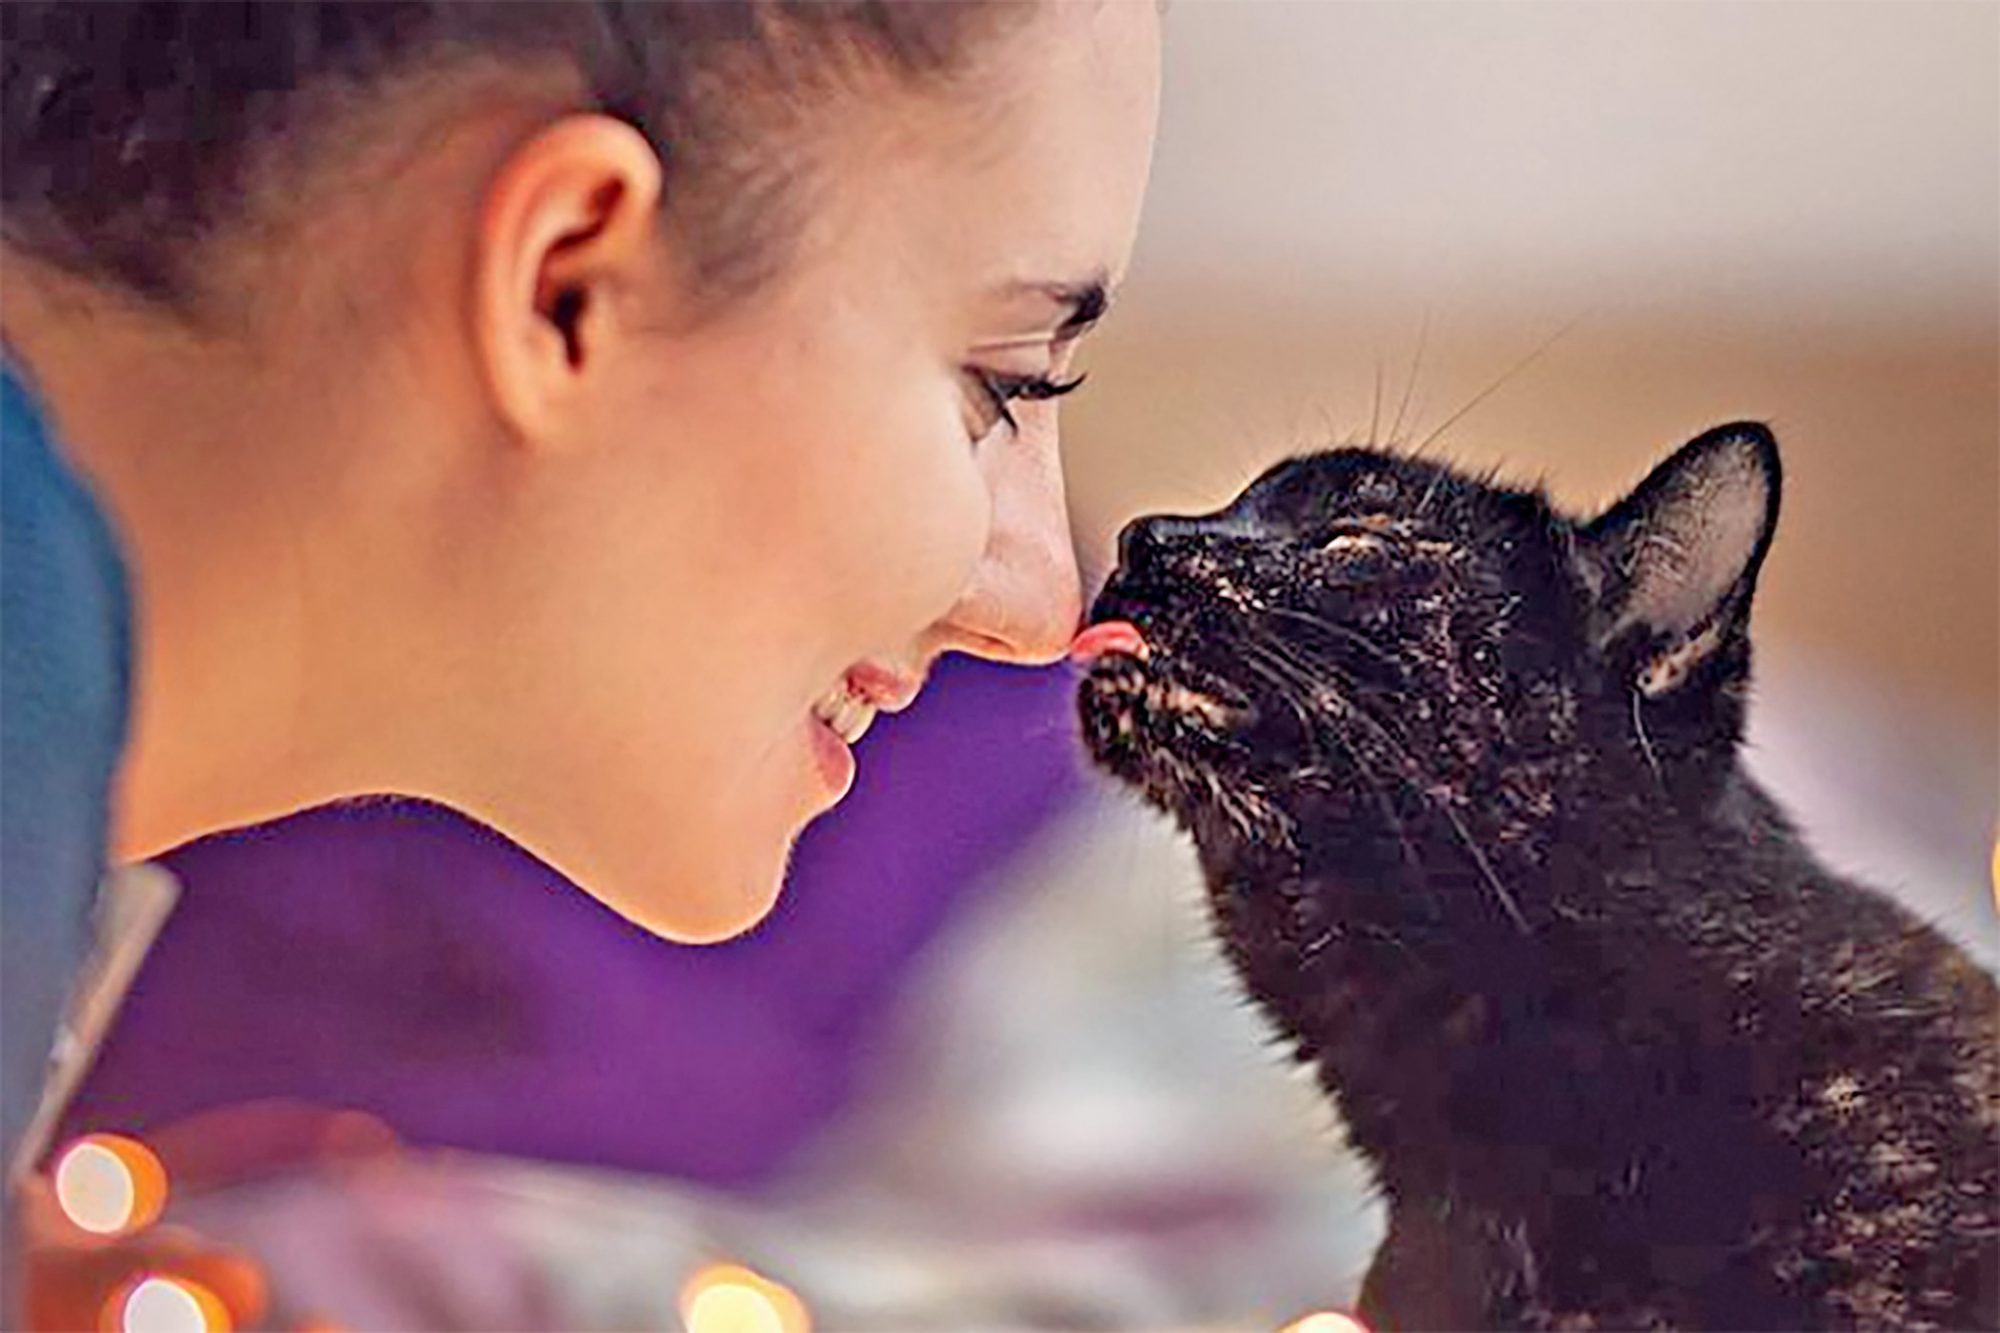 Black cat licks nose of woman